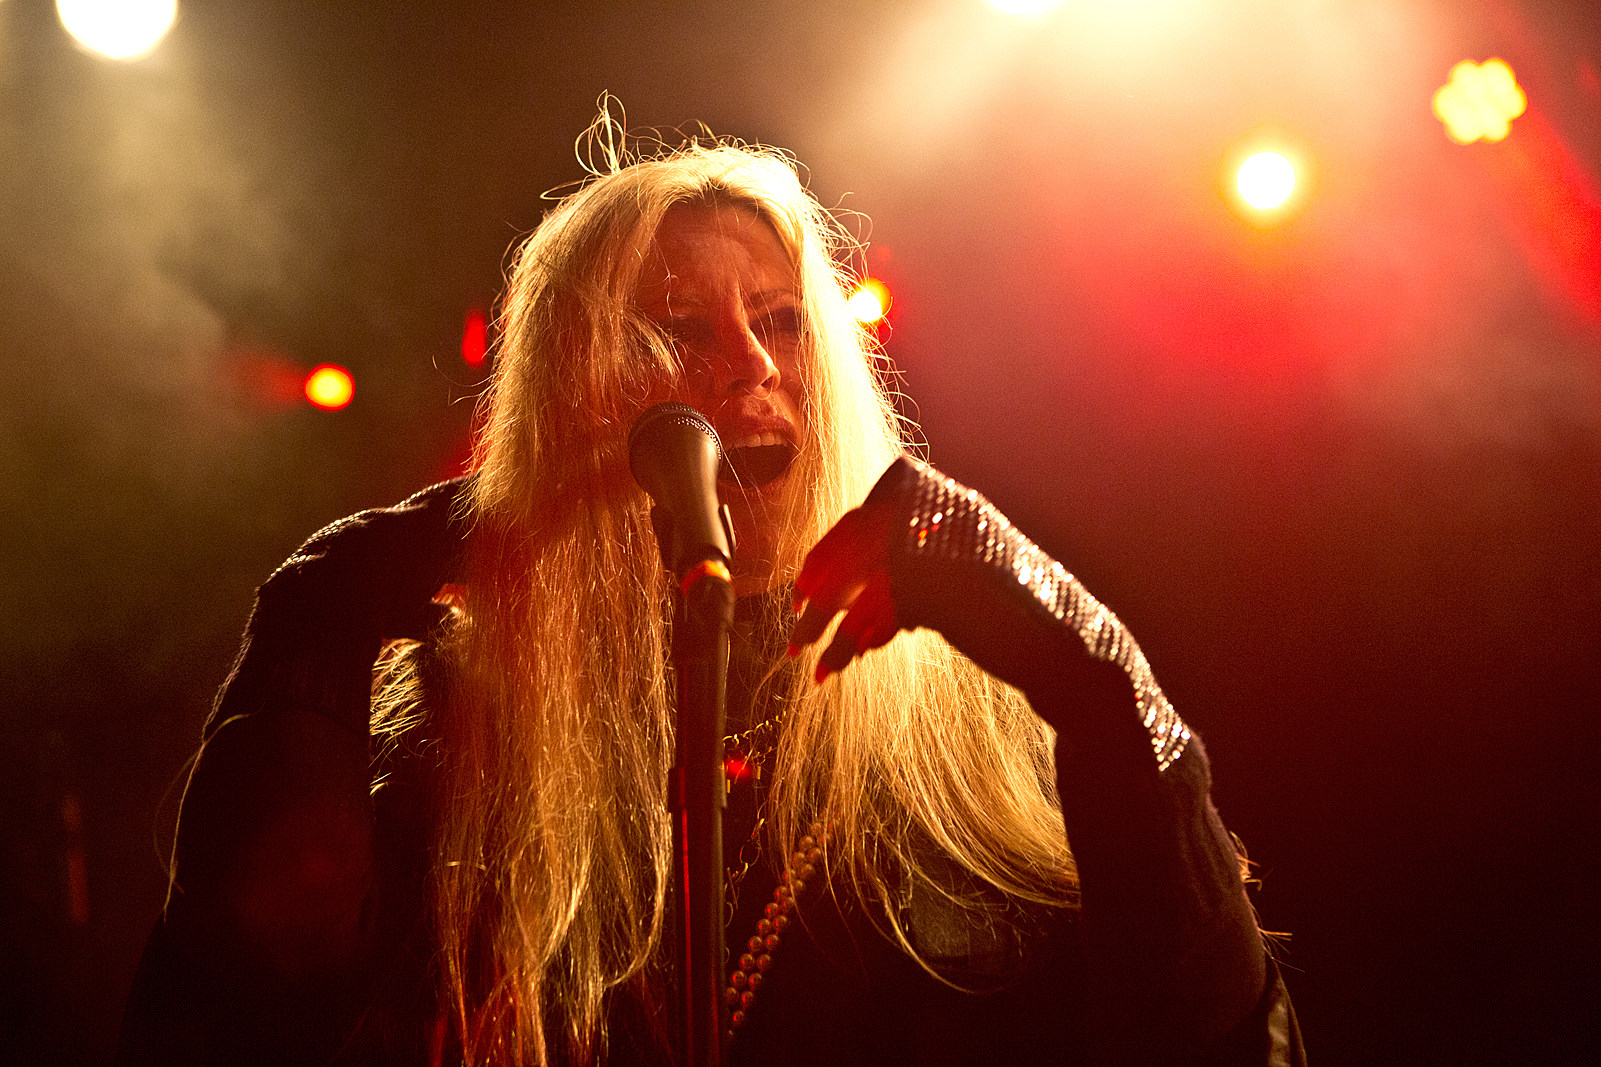 Coven played a Satanic comeback show at LPR Halloween weekend (pics)